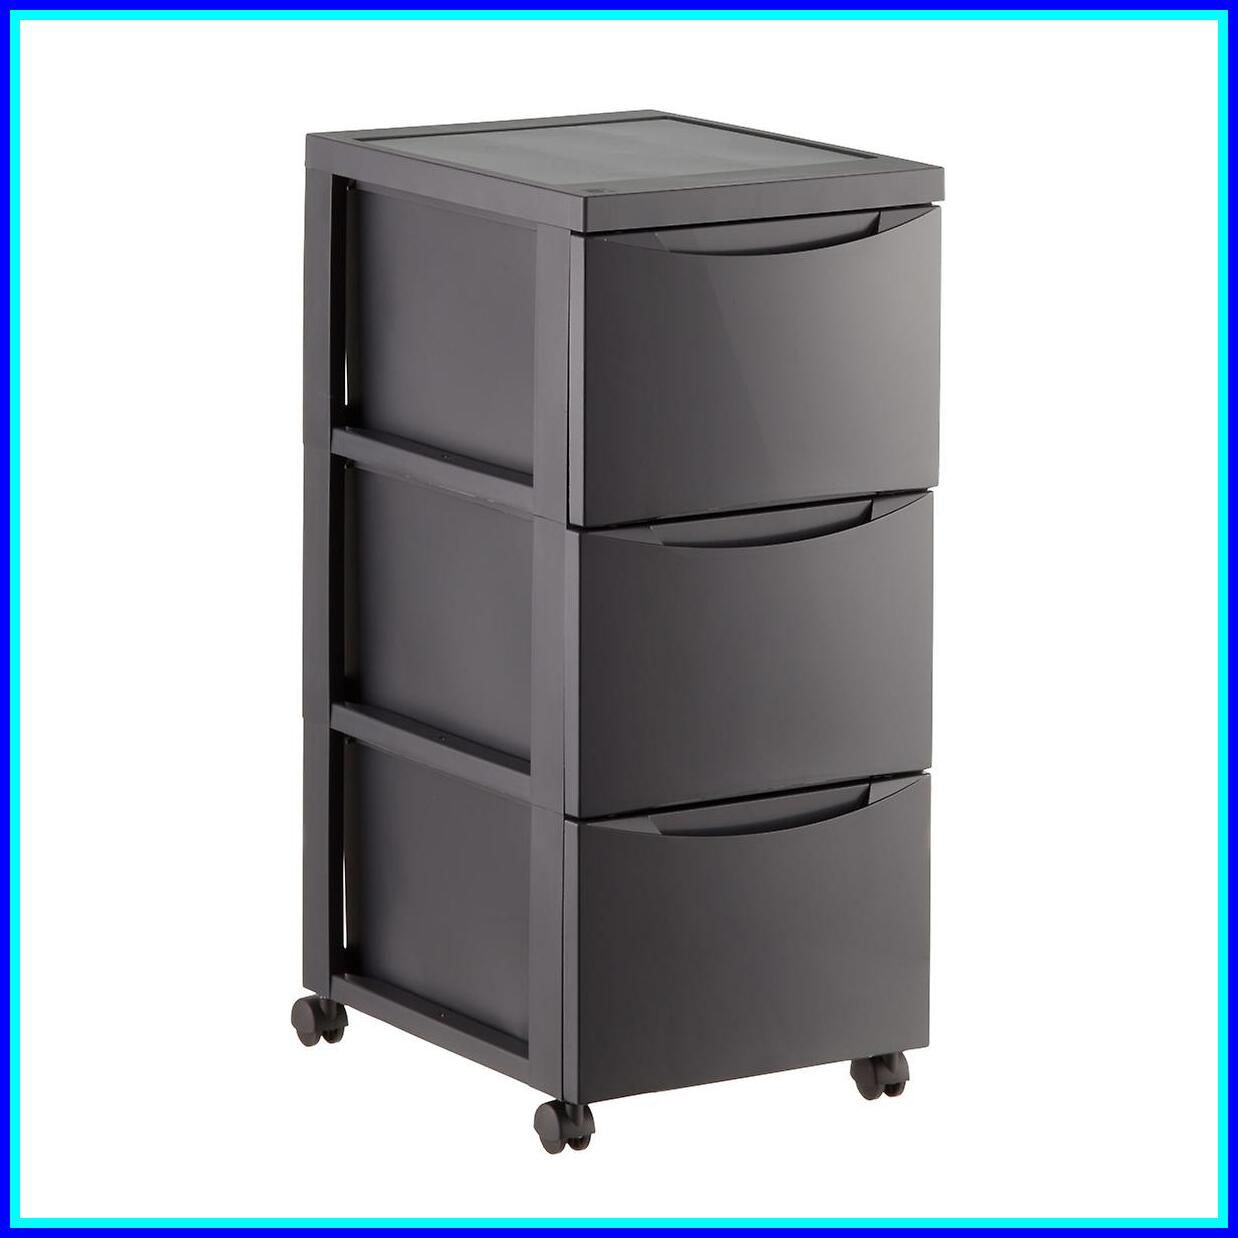 100 Reference Of 3 Drawer Plastic Cart With Wheels In 2020 Plastic Storage Drawers Plastic Container Storage Storage Drawers